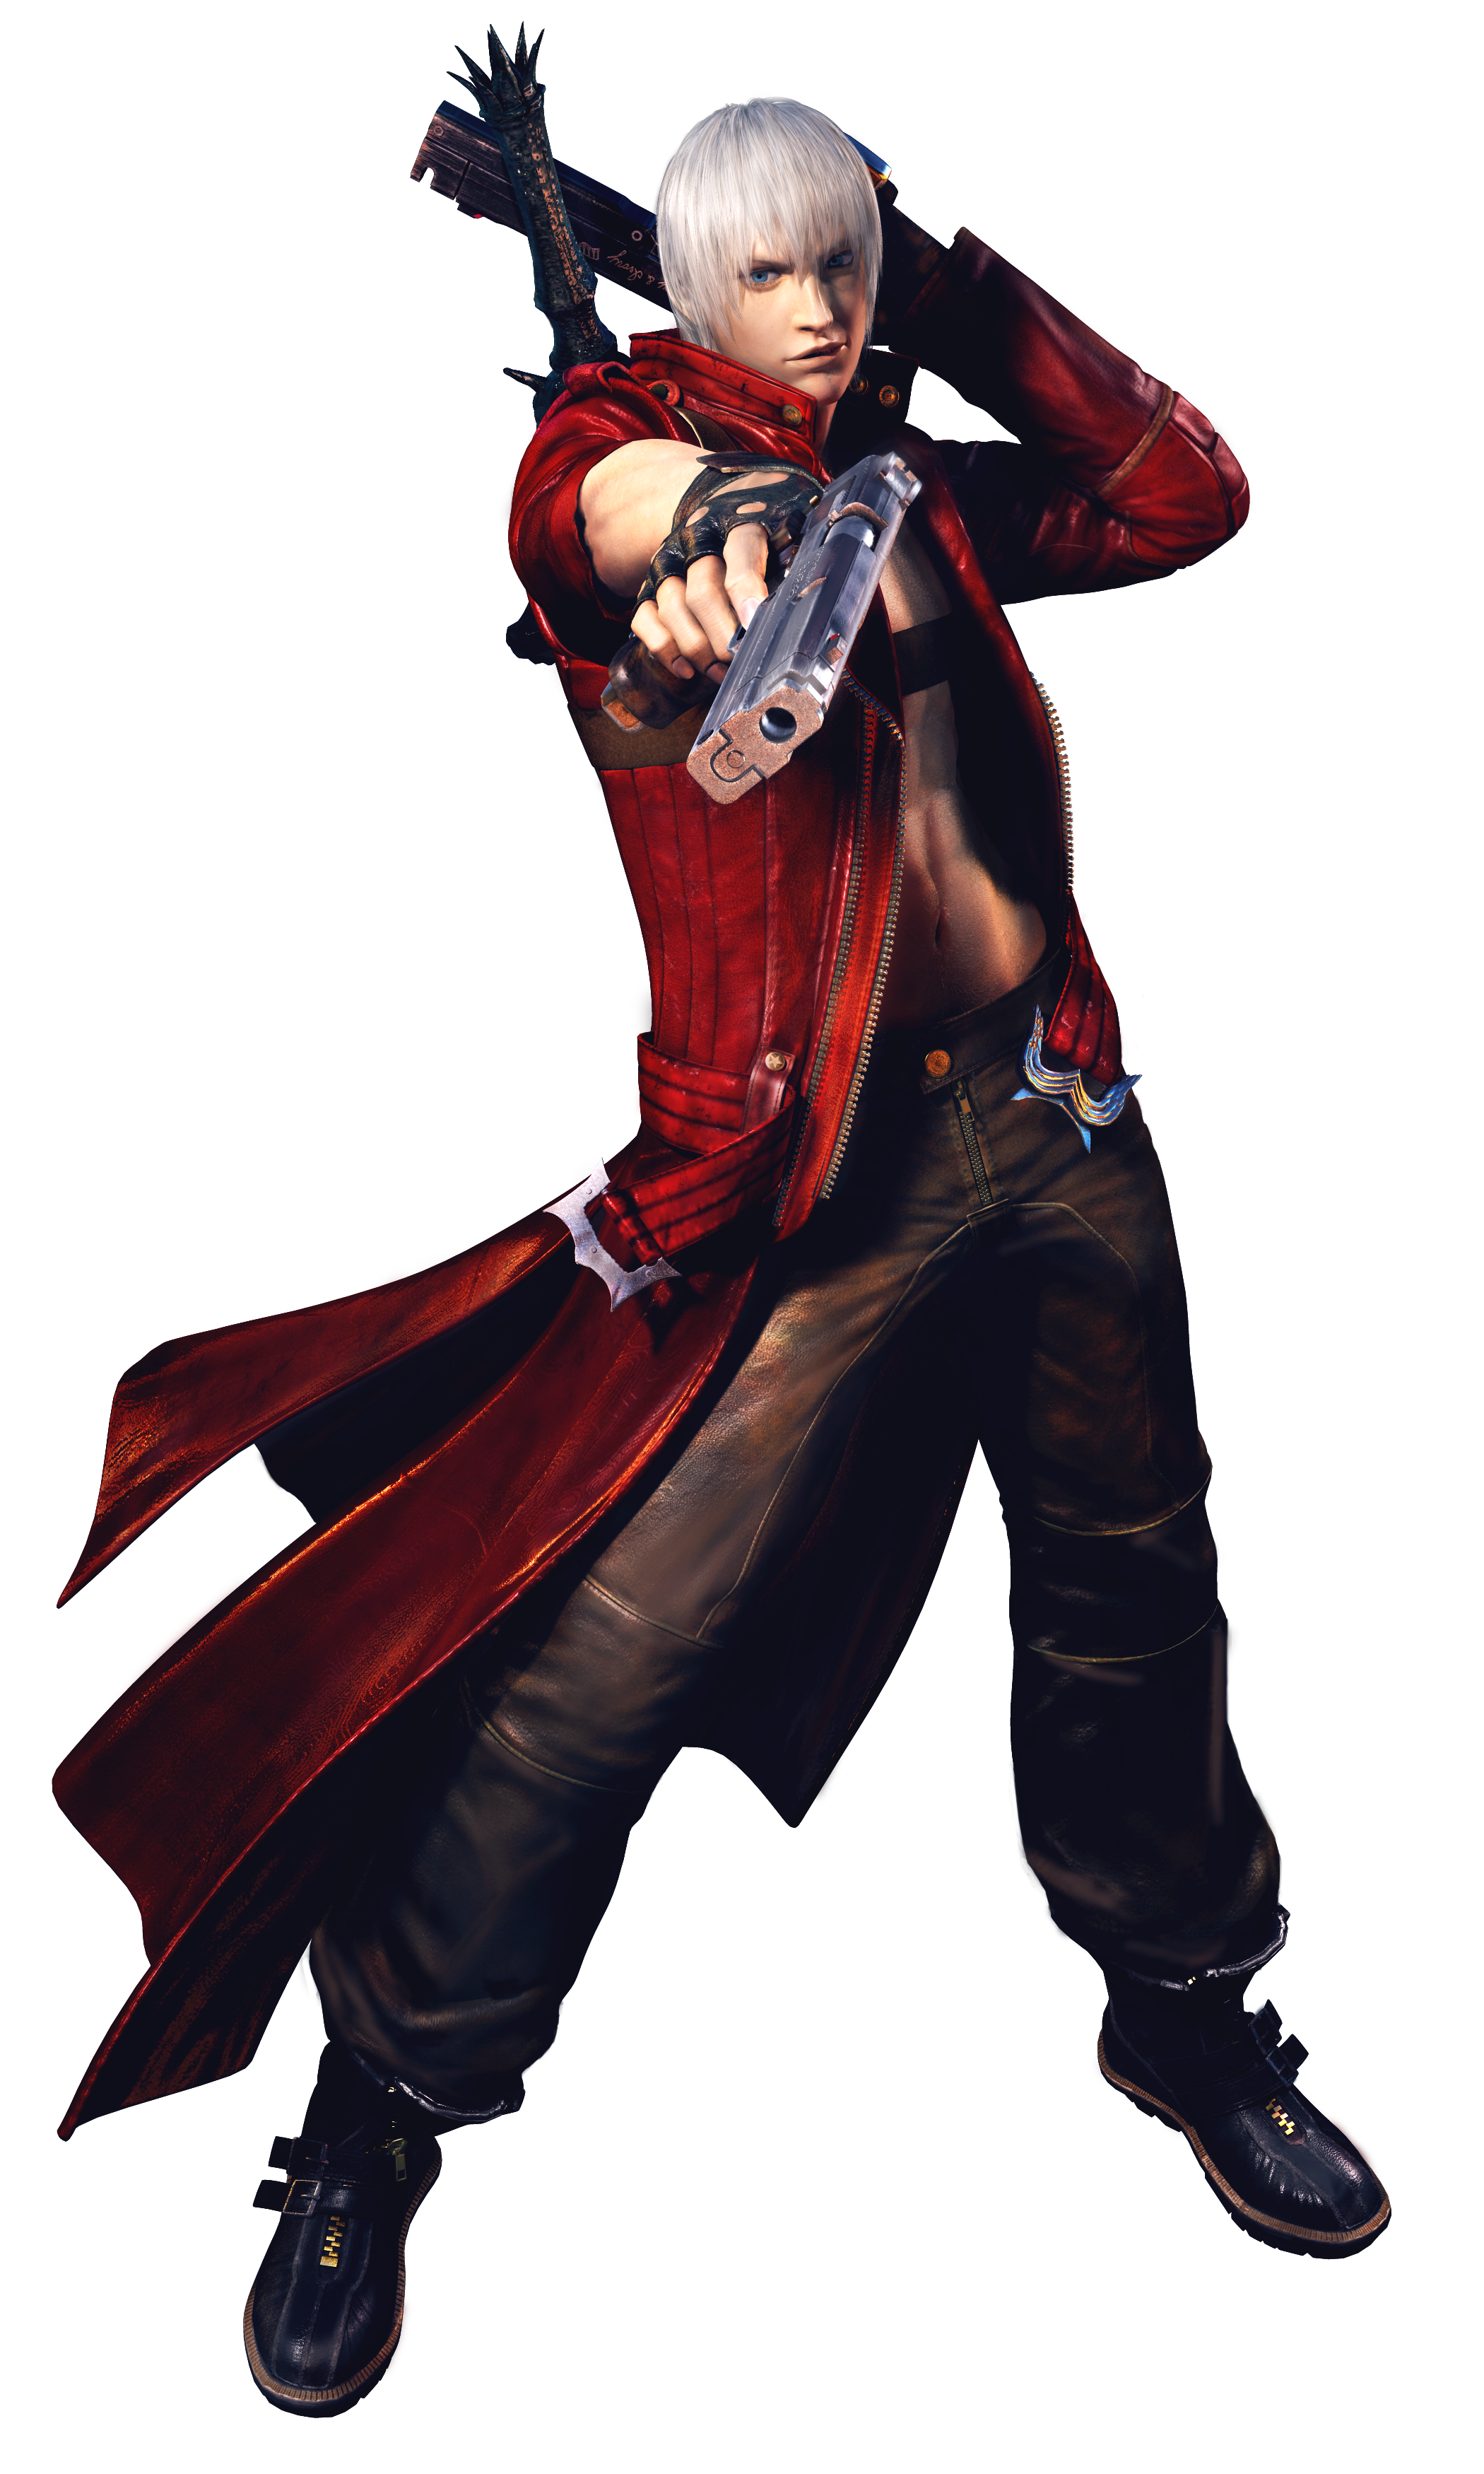 Dante (Devil May Cry) Awesome pinup Artworks